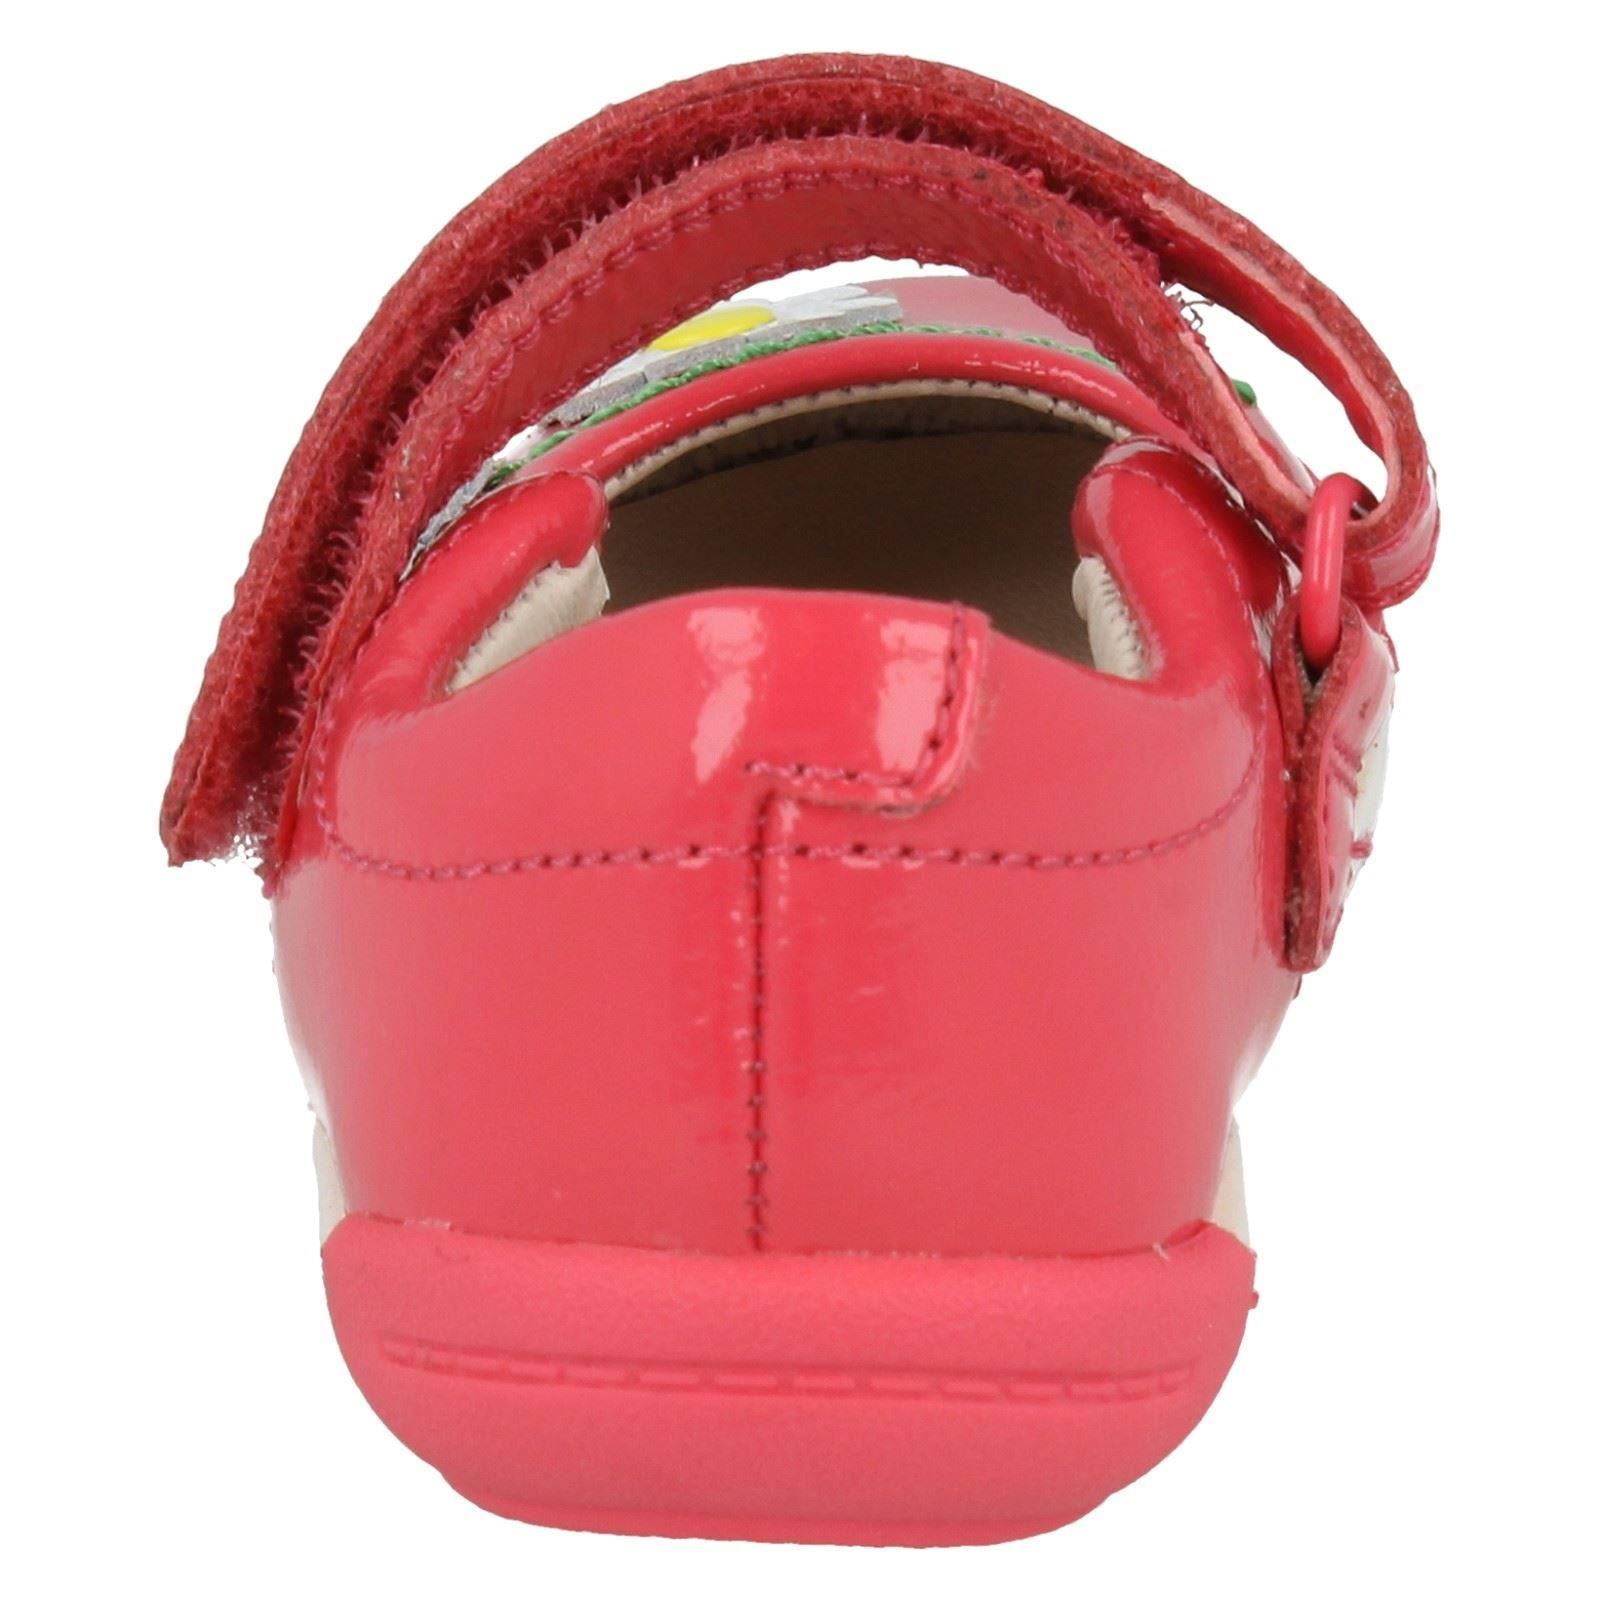 Girls Clarks First Shoes With Floral Detail Softly Jam